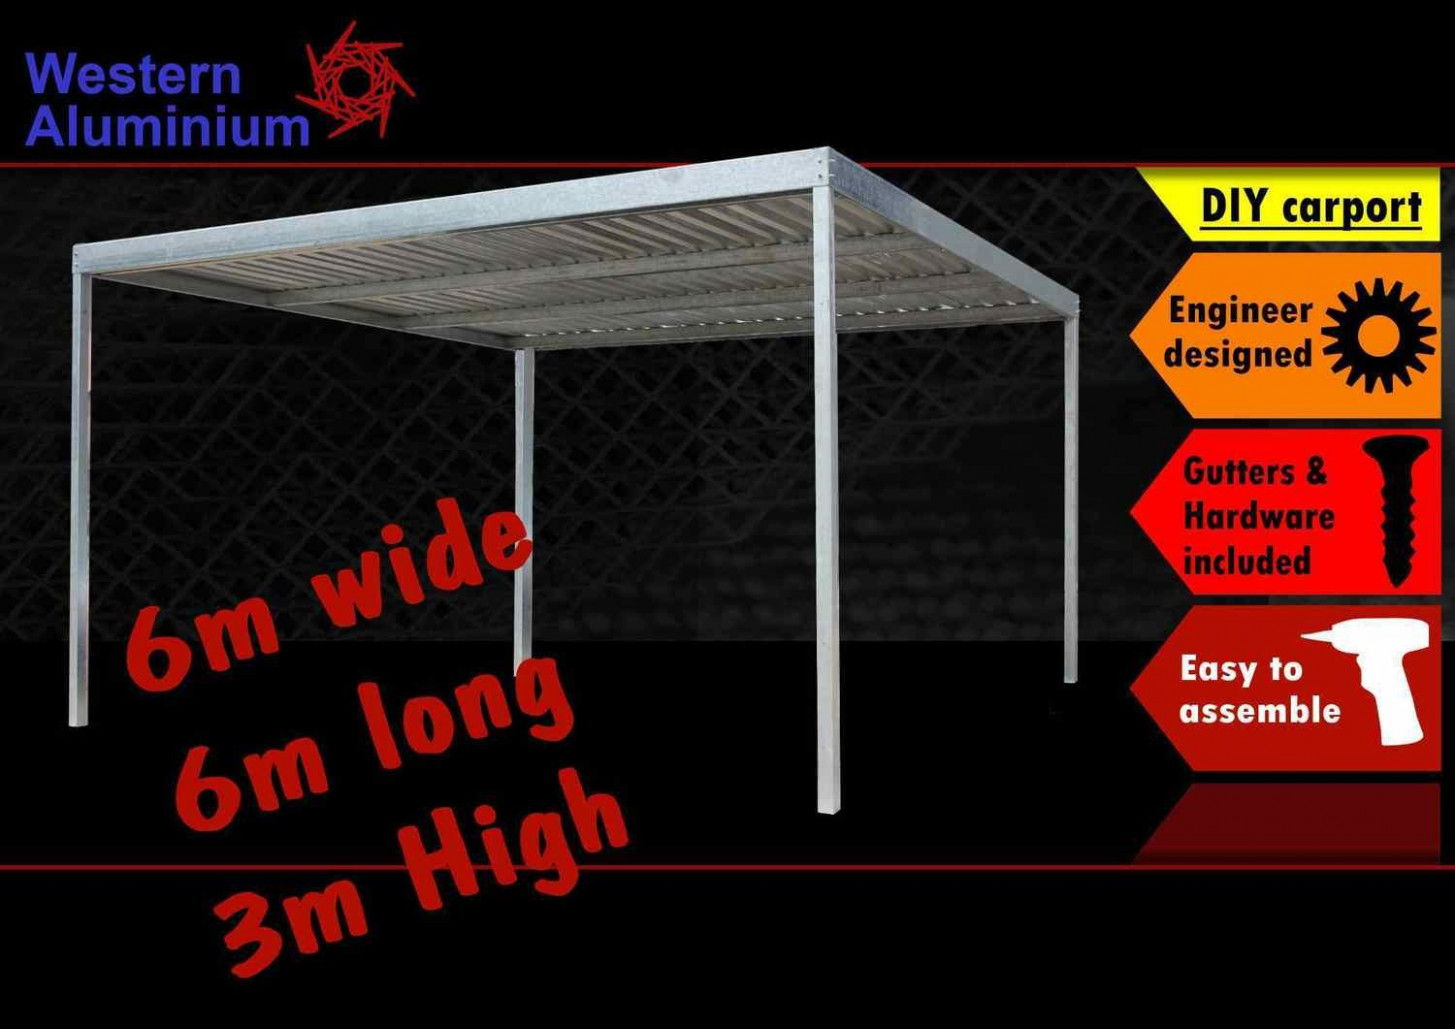 11m X 11m Galvanised Carport Kit 11m High Carport Canopy Hardware